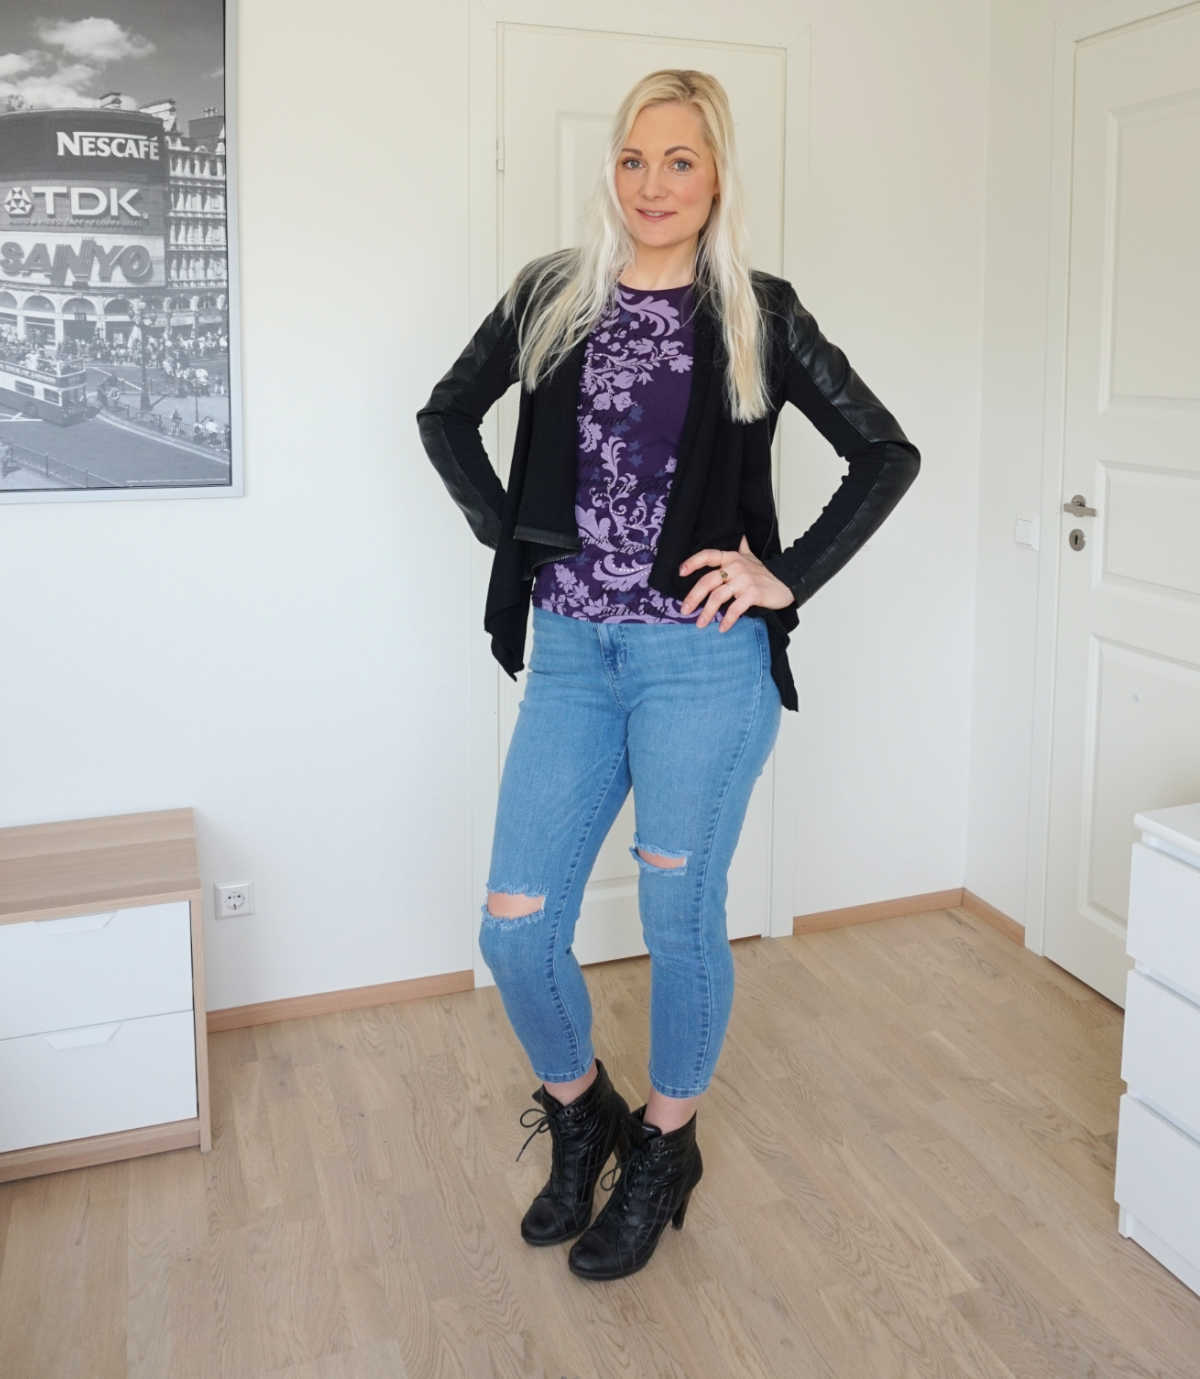 Simple casual outfit: rhinestones embellished purple t-shirt, black vegan leather and ponte jacket, light blue ripped skinny jeans and black heeled ankle boots.